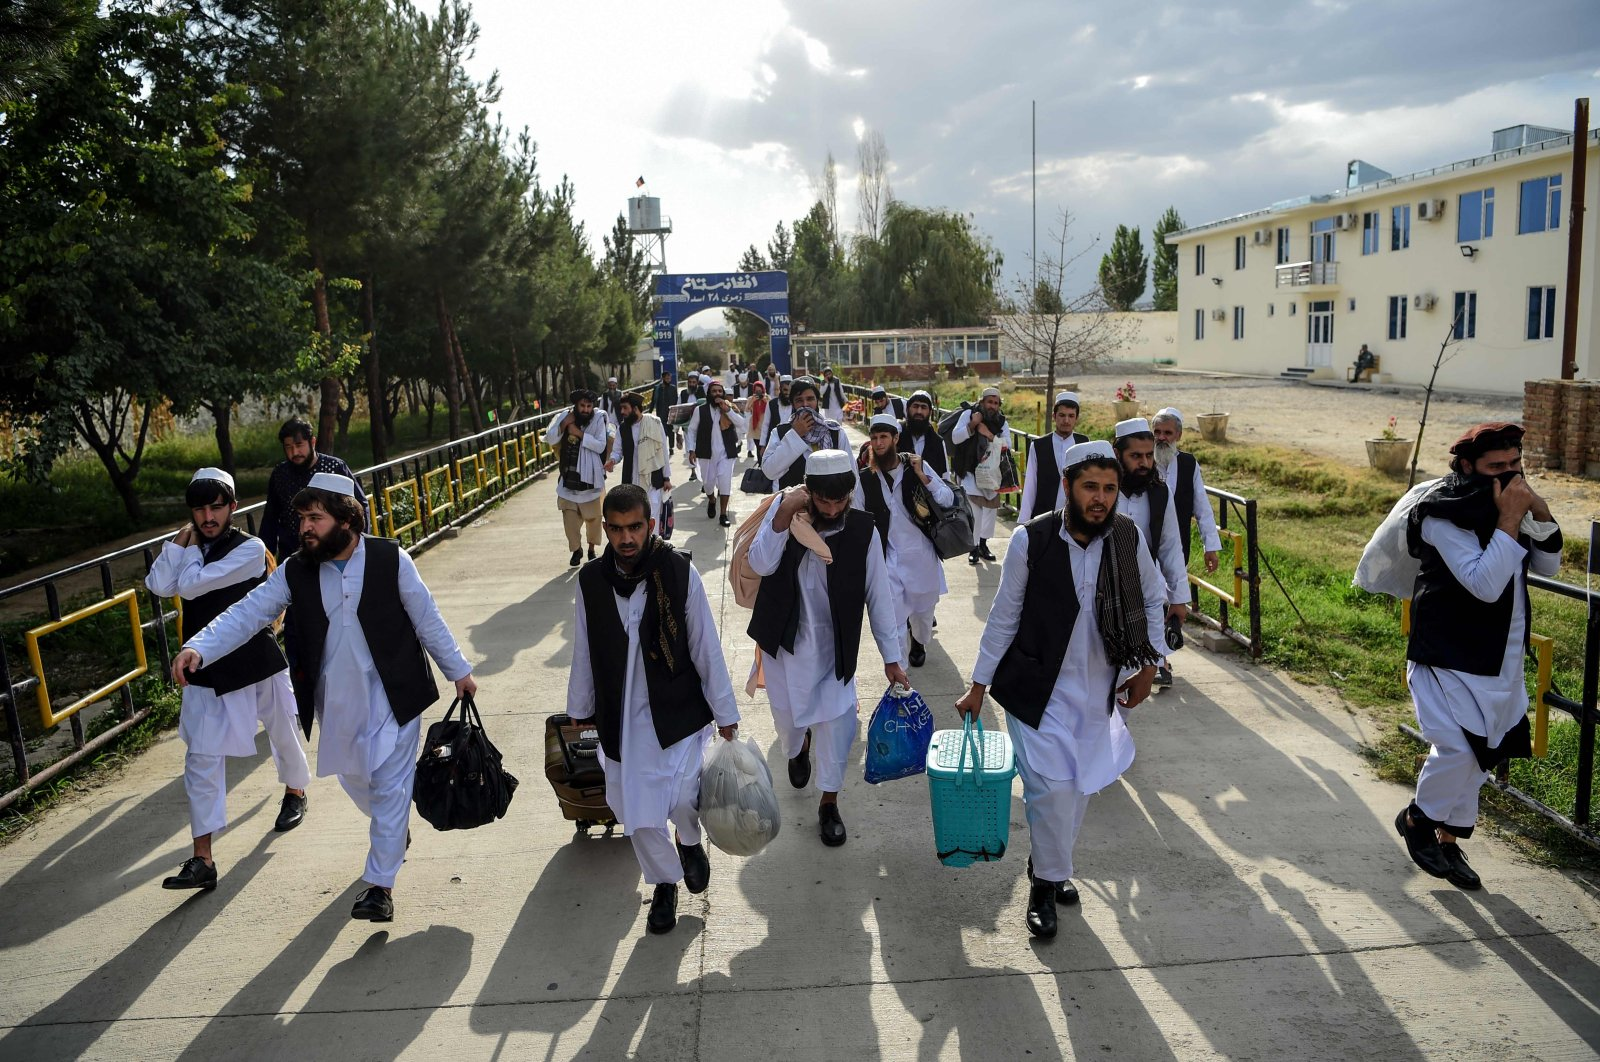 Taliban prisoners walk as they are in the process of being potentially released from Pul-e-Charkhi prison, on the outskirts of Kabul on July 31, 2020. (AFP Photo)